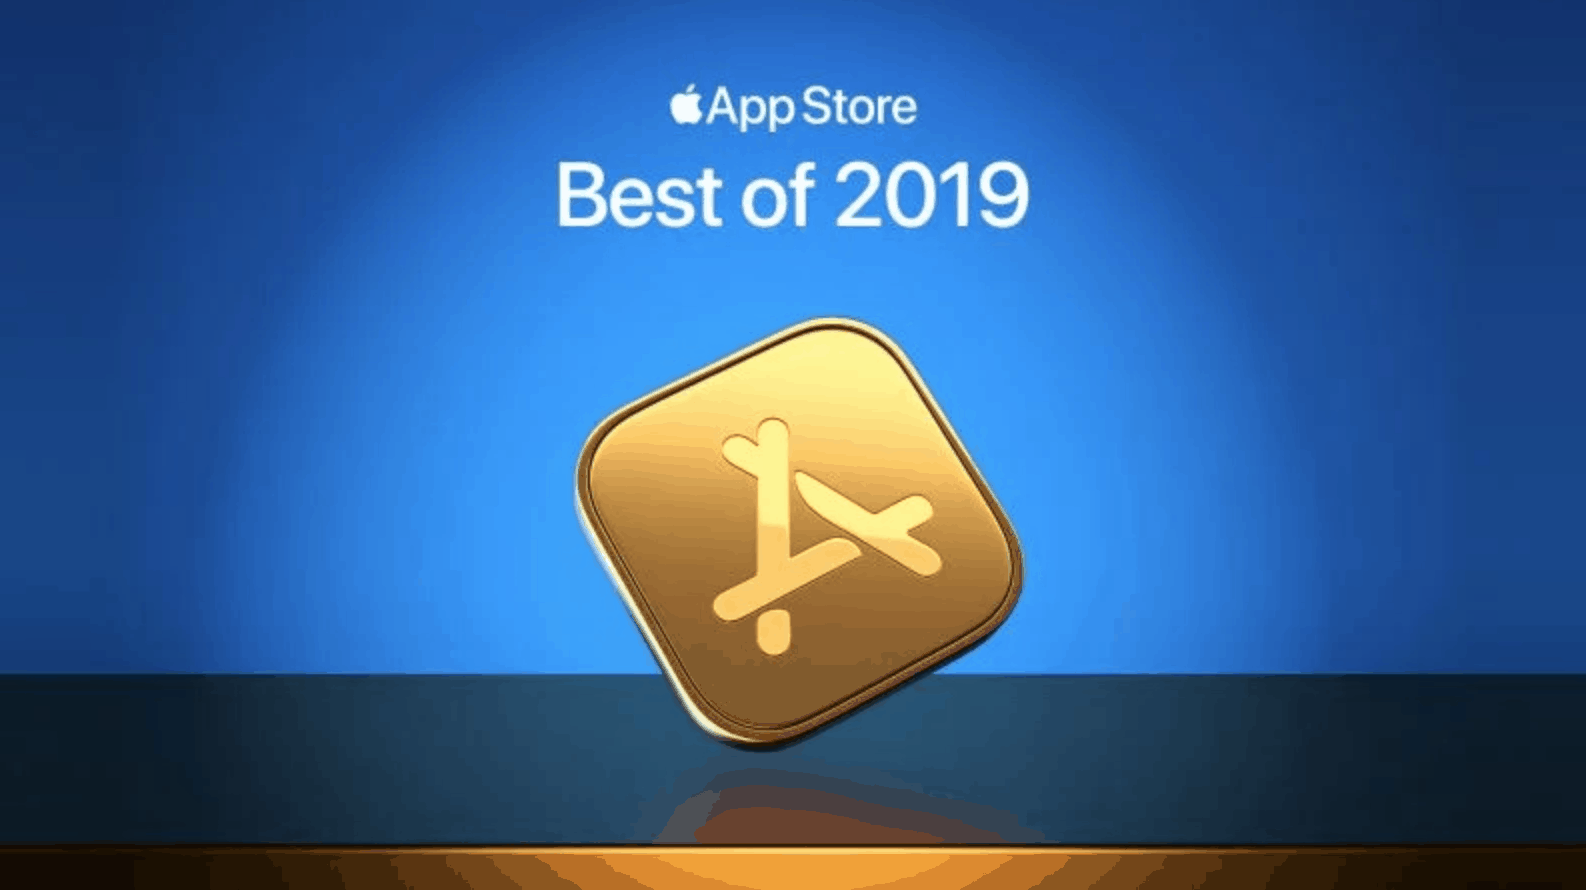 Apple announces the best iOS apps and games of 2019.